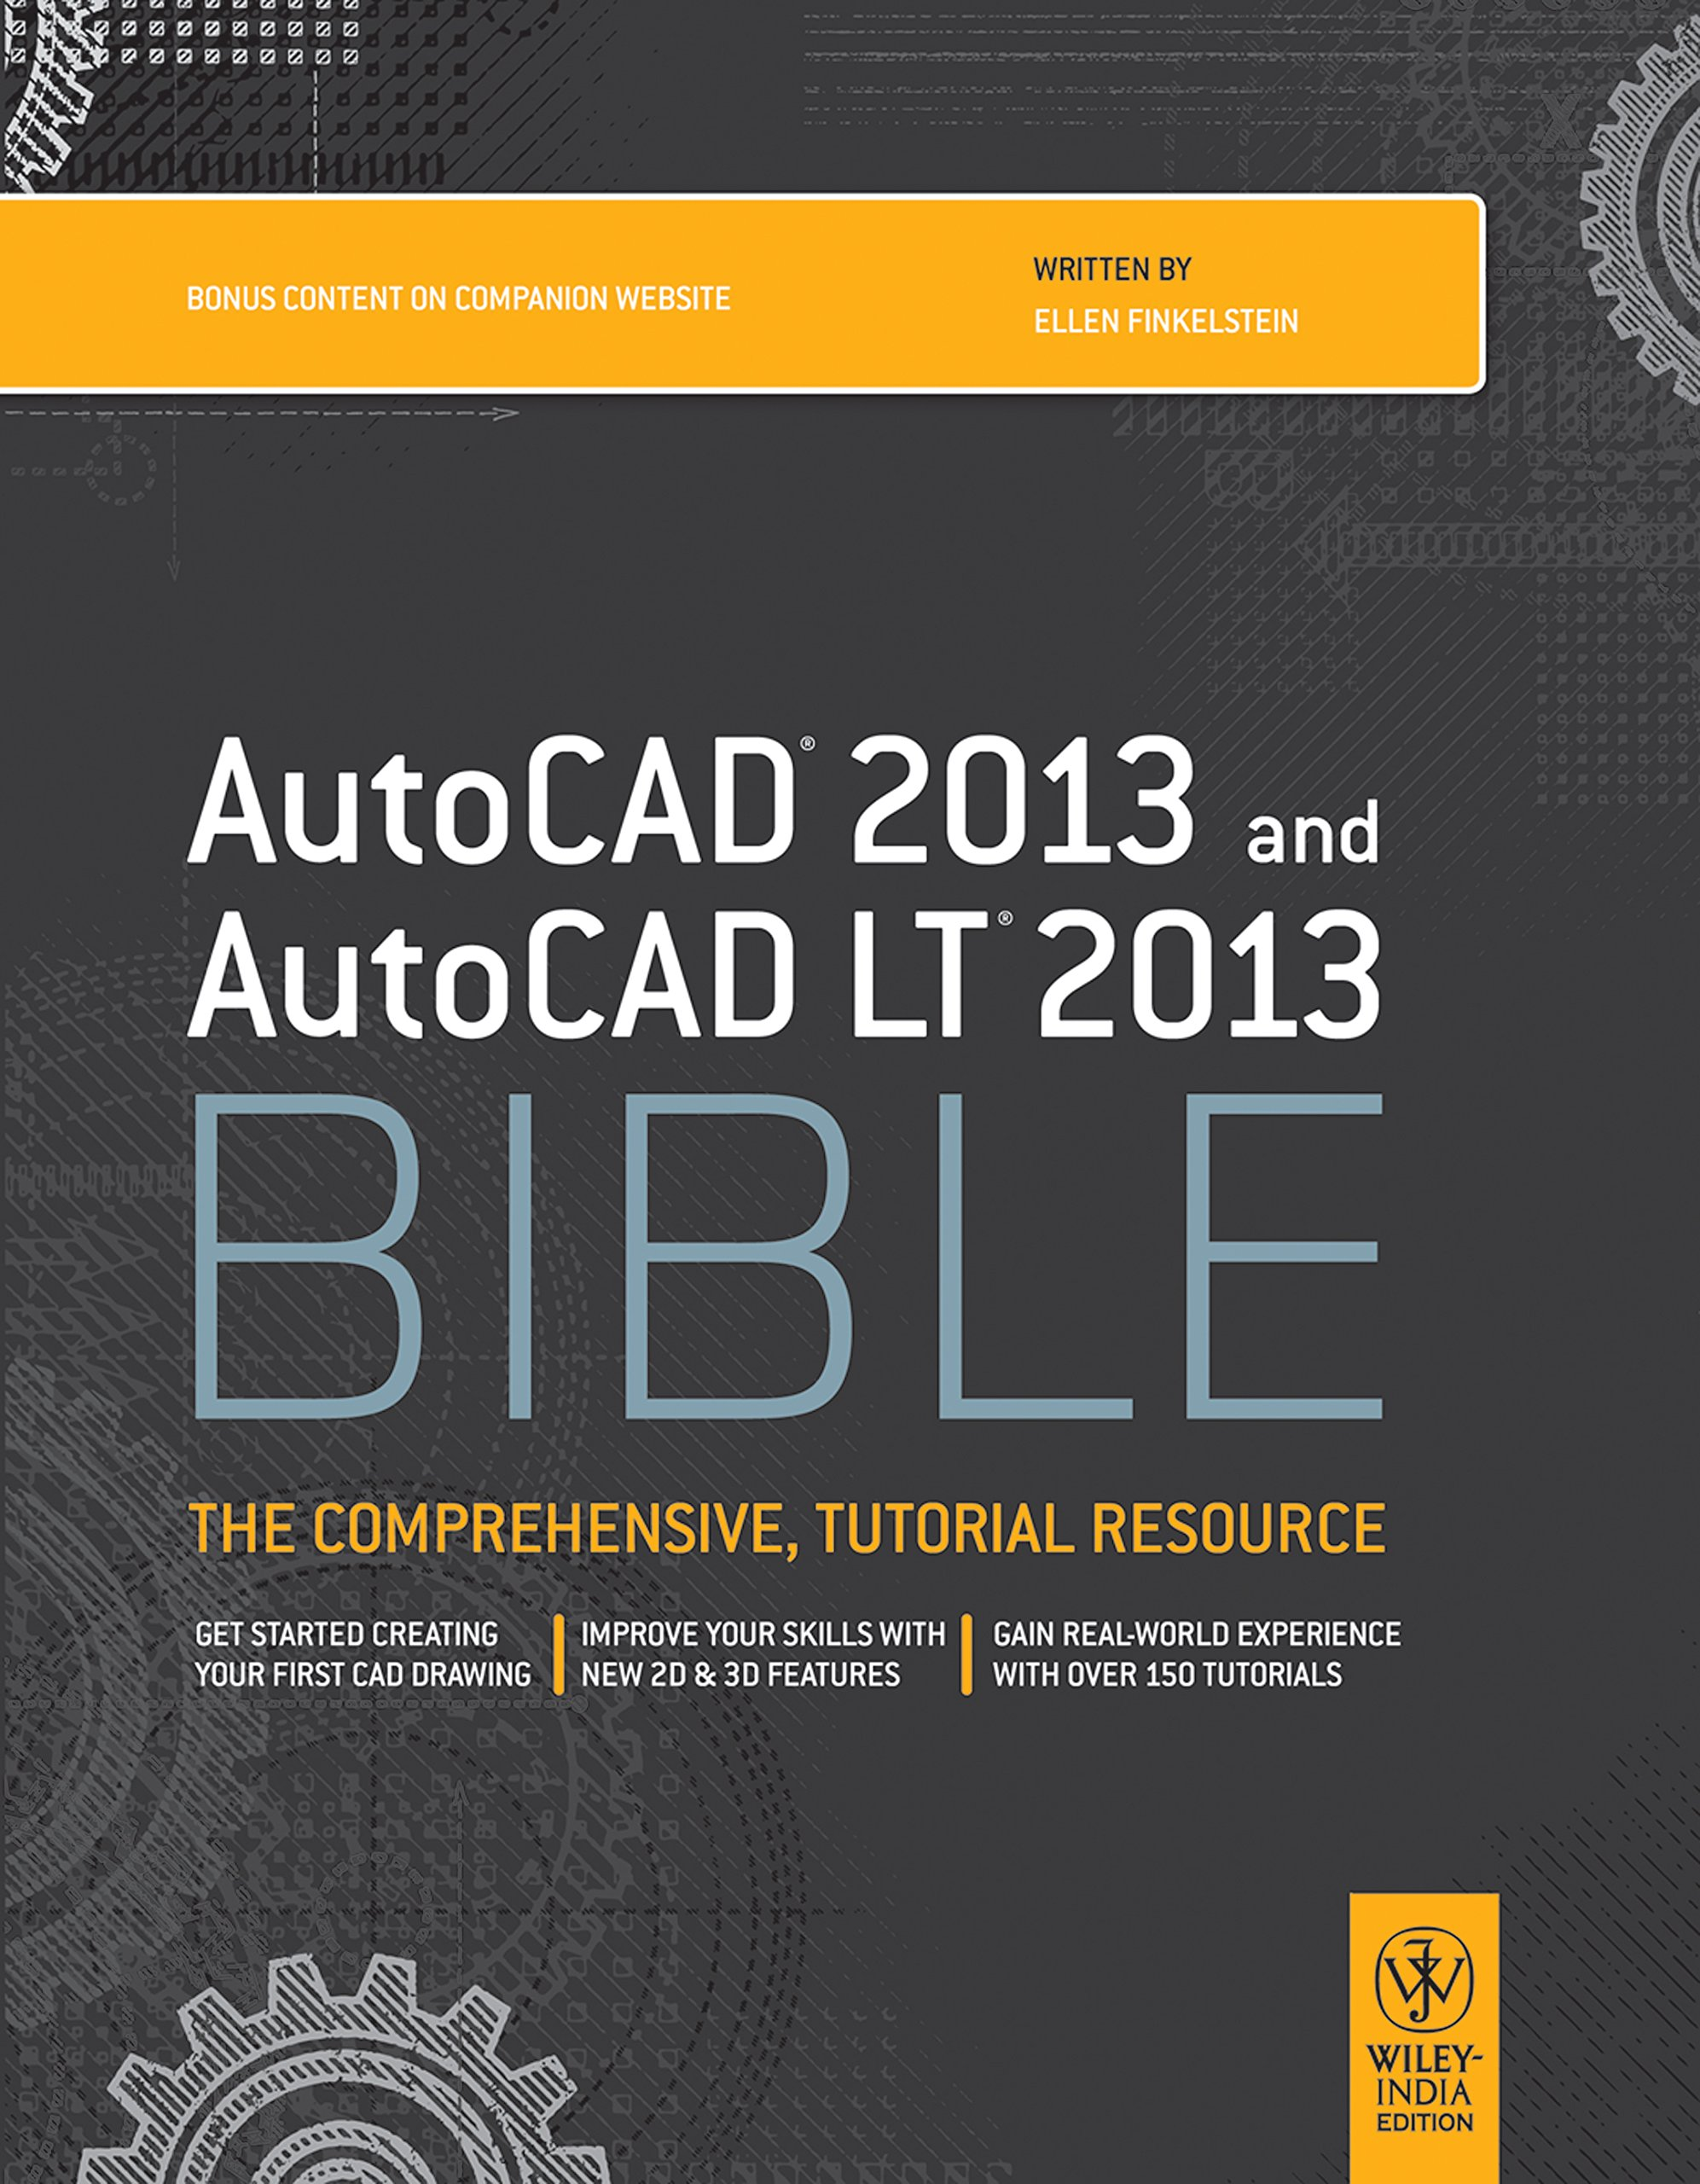 Autocad 2013 and autocad lt 2013 bible ellen finkelstein autocad 2013 and autocad lt 2013 bible ellen finkelstein 9788126537402 amazon books baditri Image collections